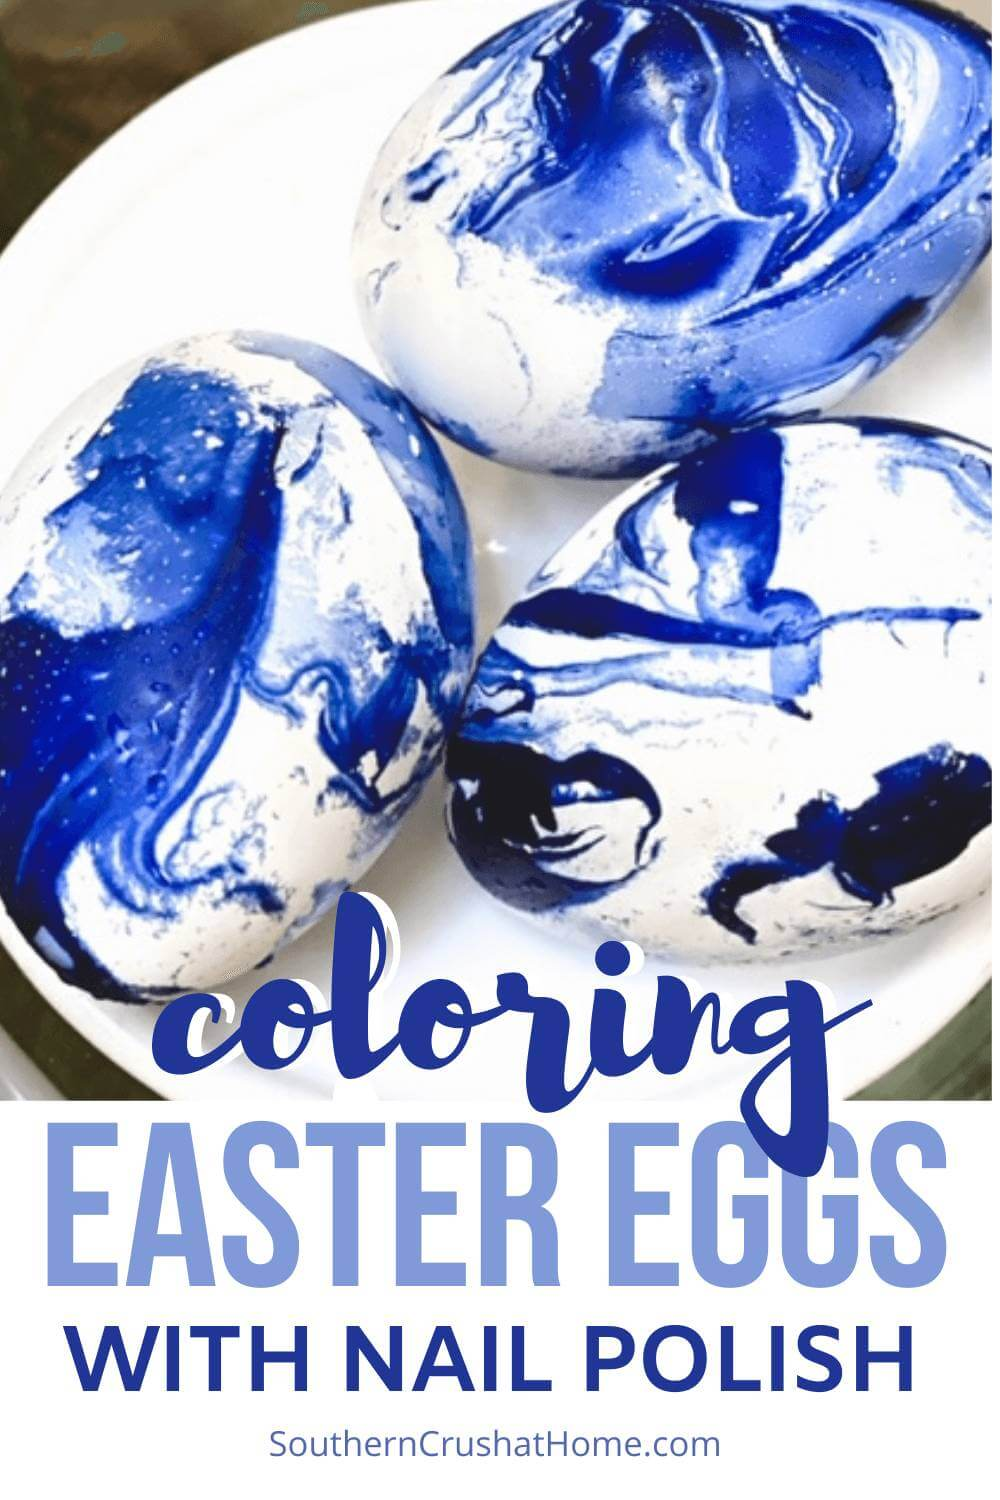 How To Color Easter Eggs With Nail Polish Diy Home Decorating Crafts